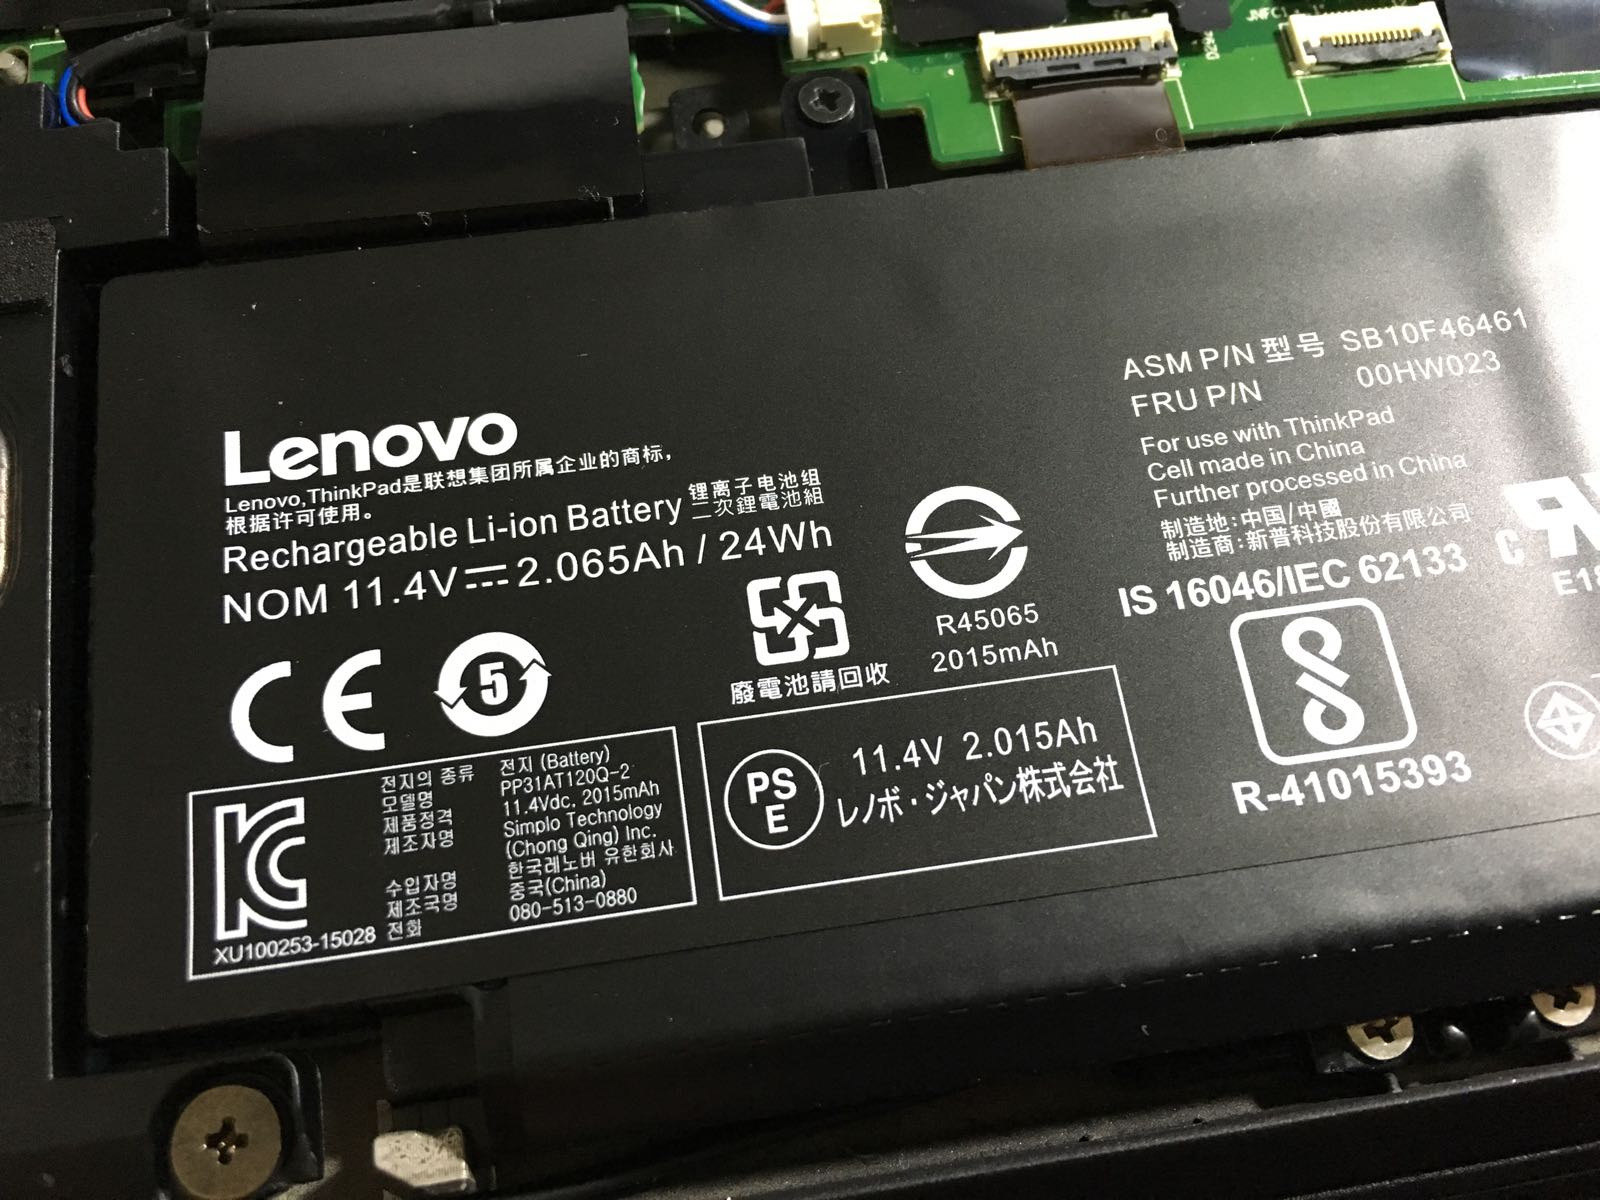 Lenovo Thinkpad T470s Disassembly and RAM, SSD Upgrade